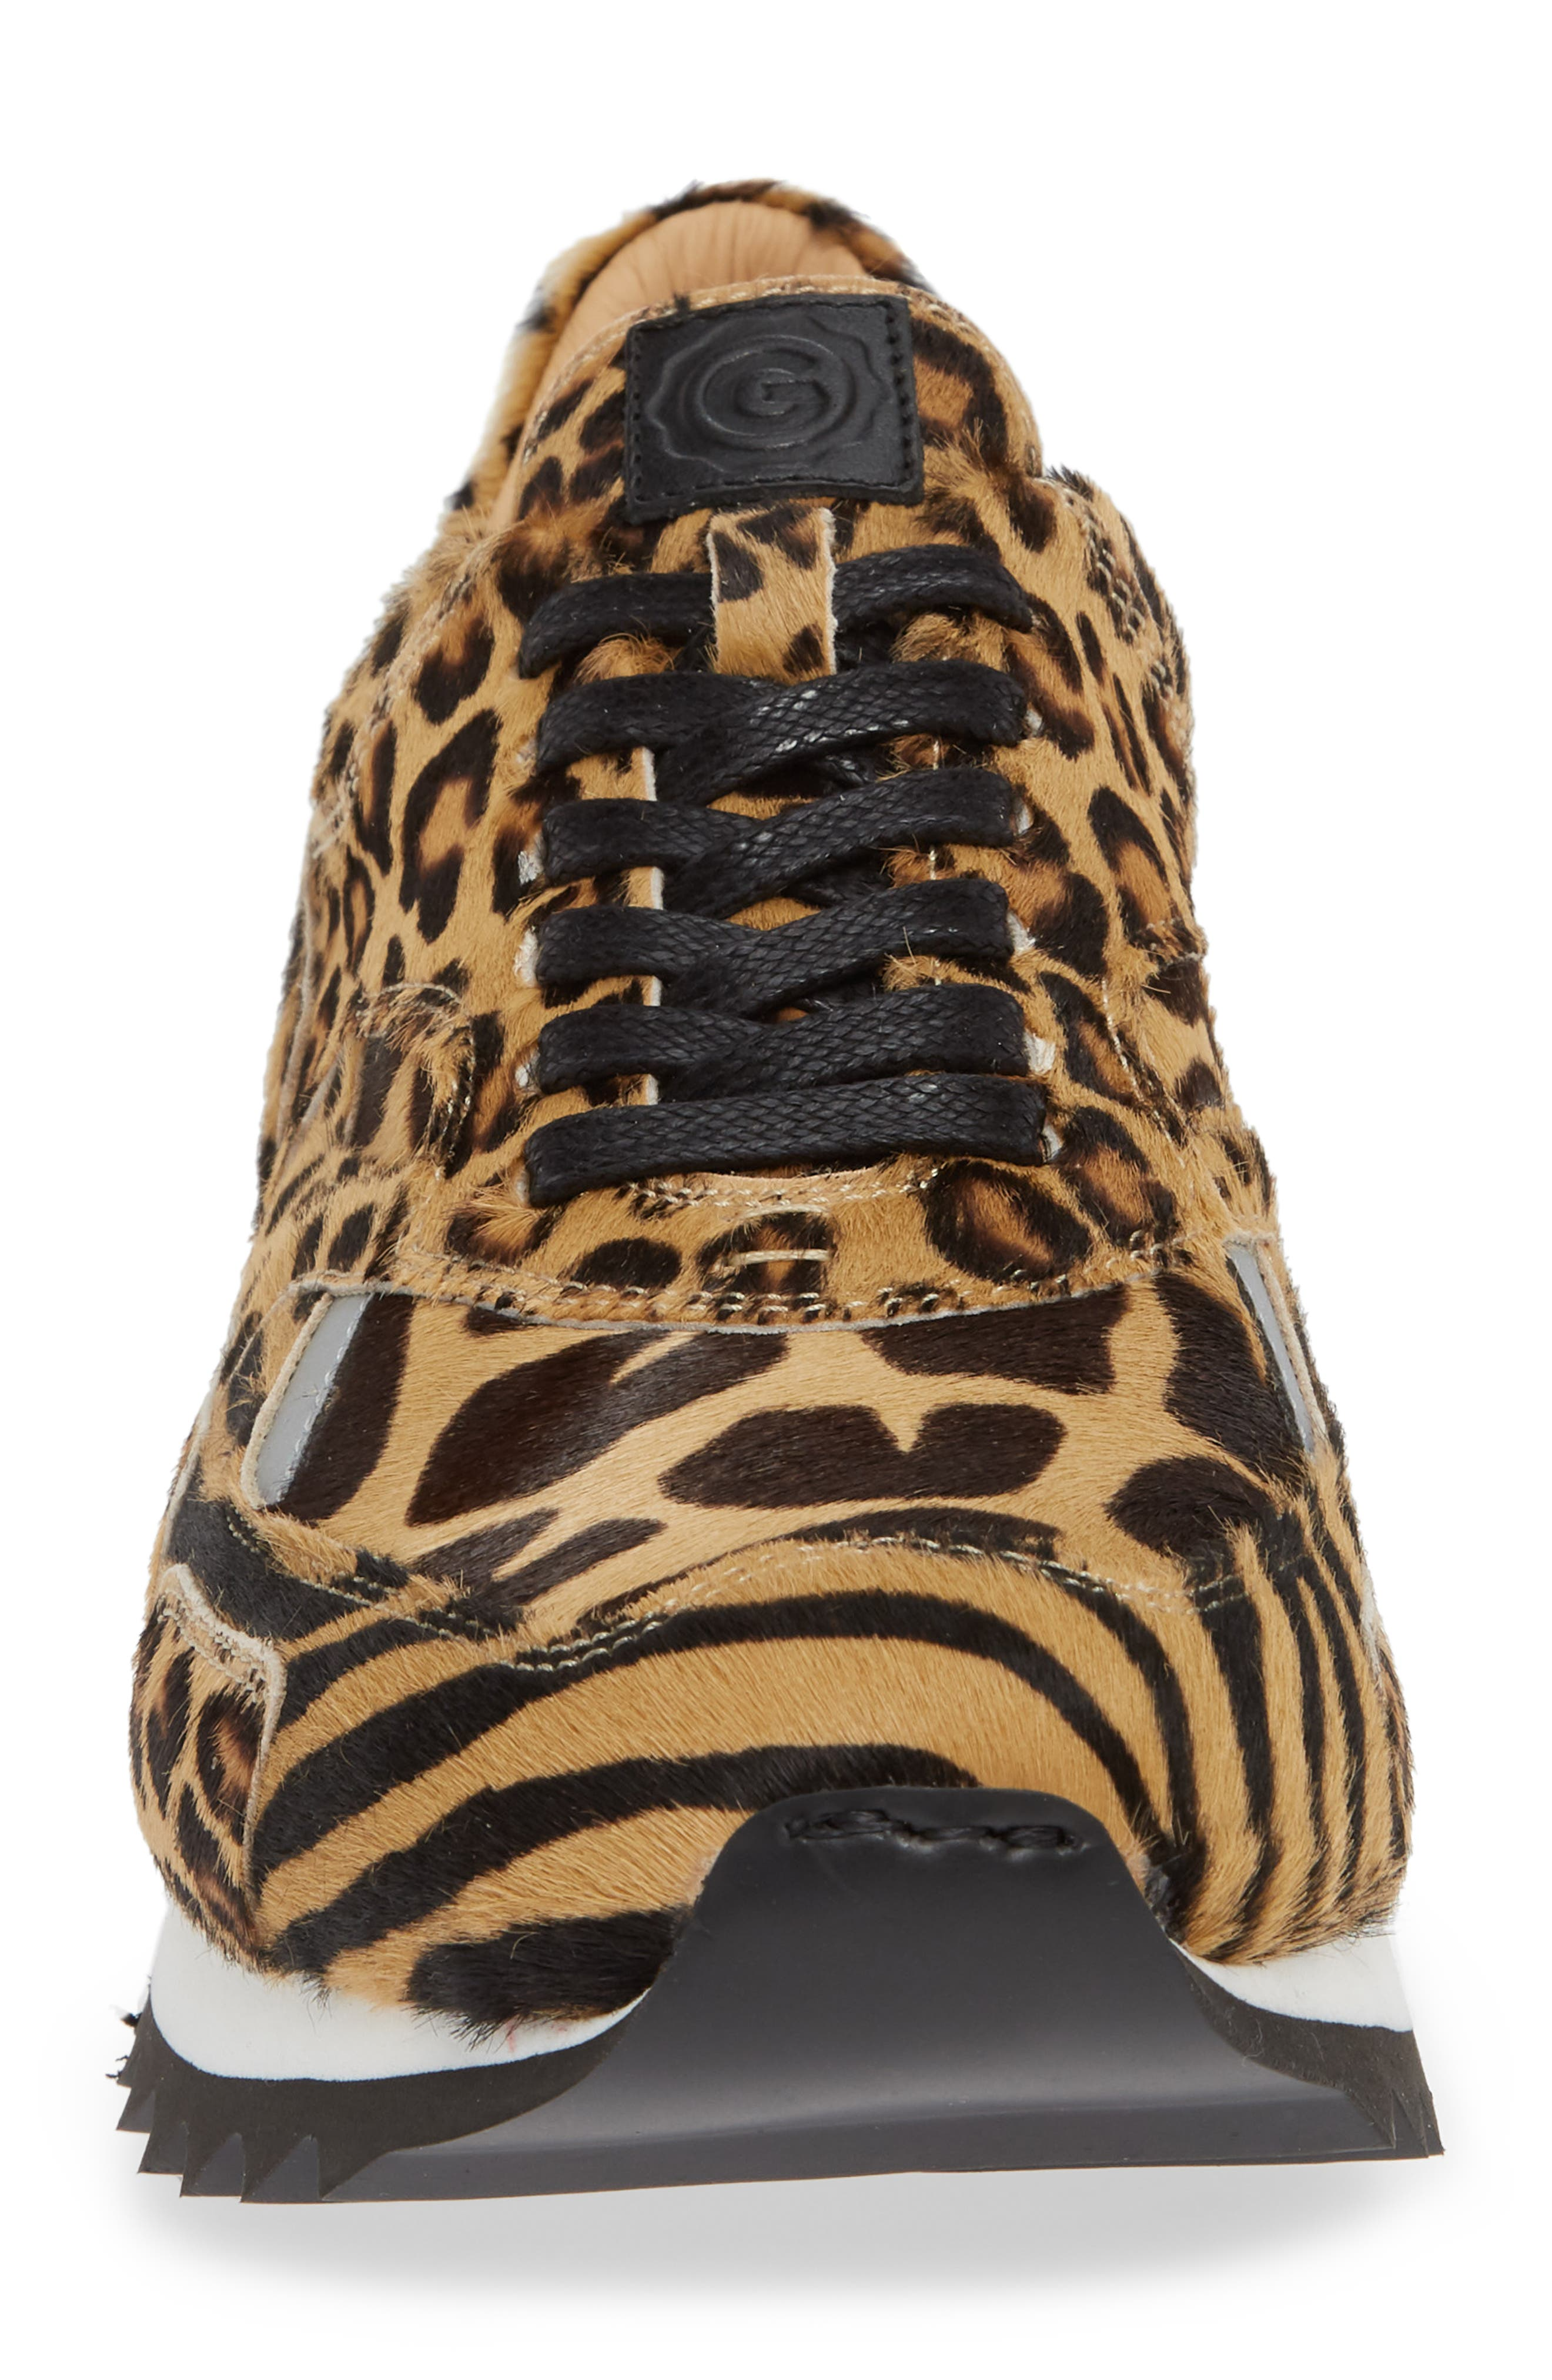 Nick Wooster x GREATS Pronto Genuine Calf Hair Sneaker,                             Alternate thumbnail 4, color,                             209